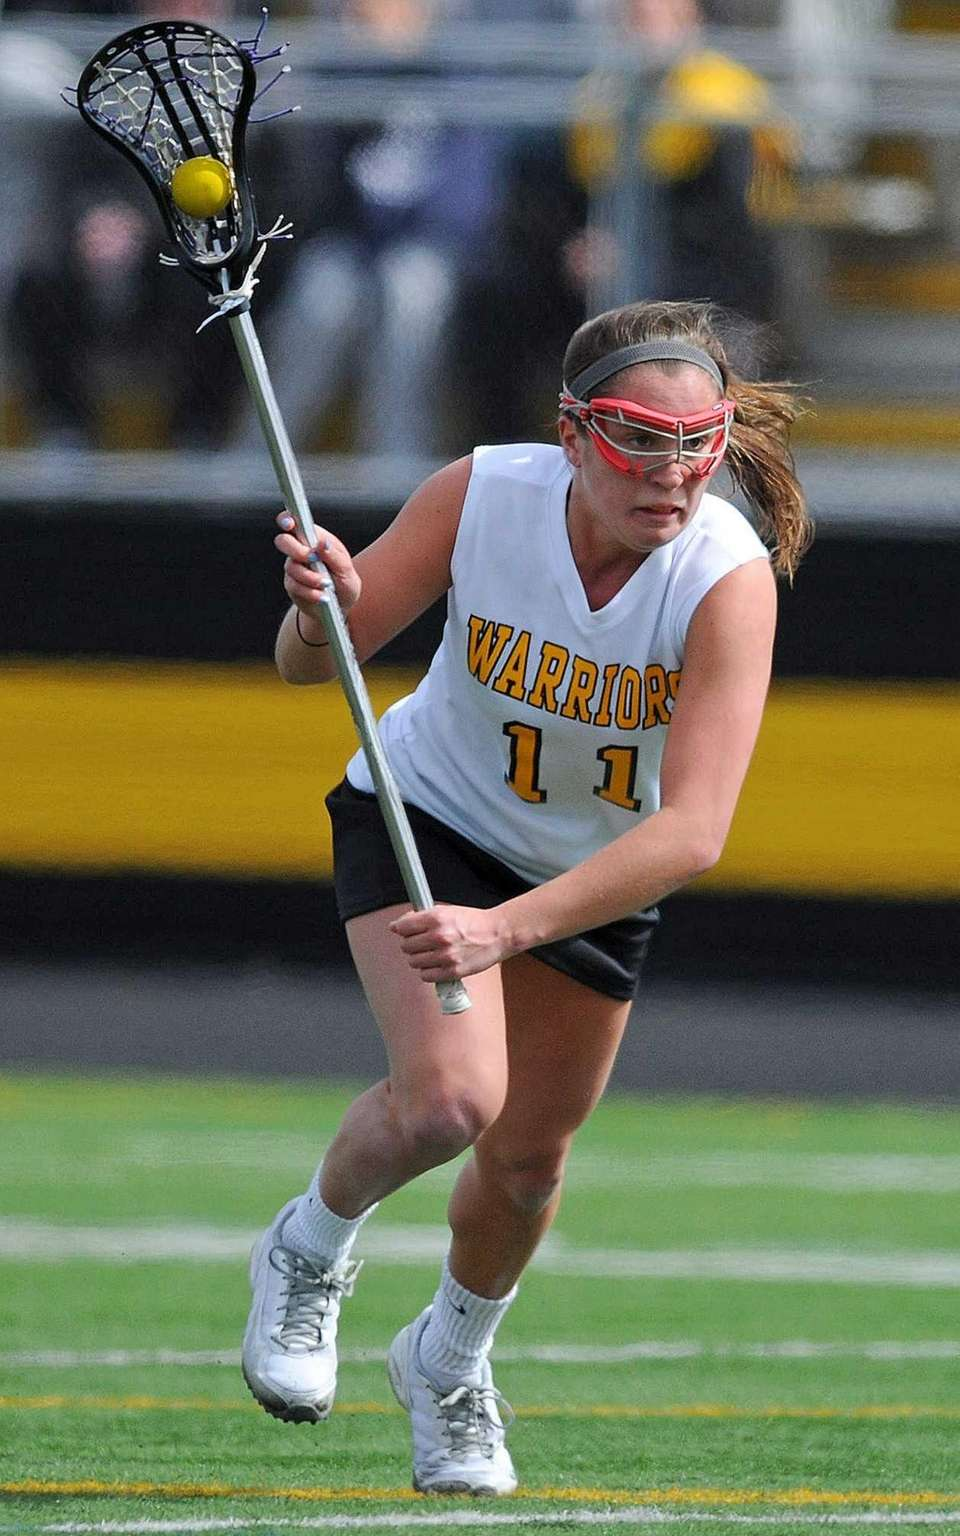 Wantagh's Catie Ingrilli prepares to take a shot